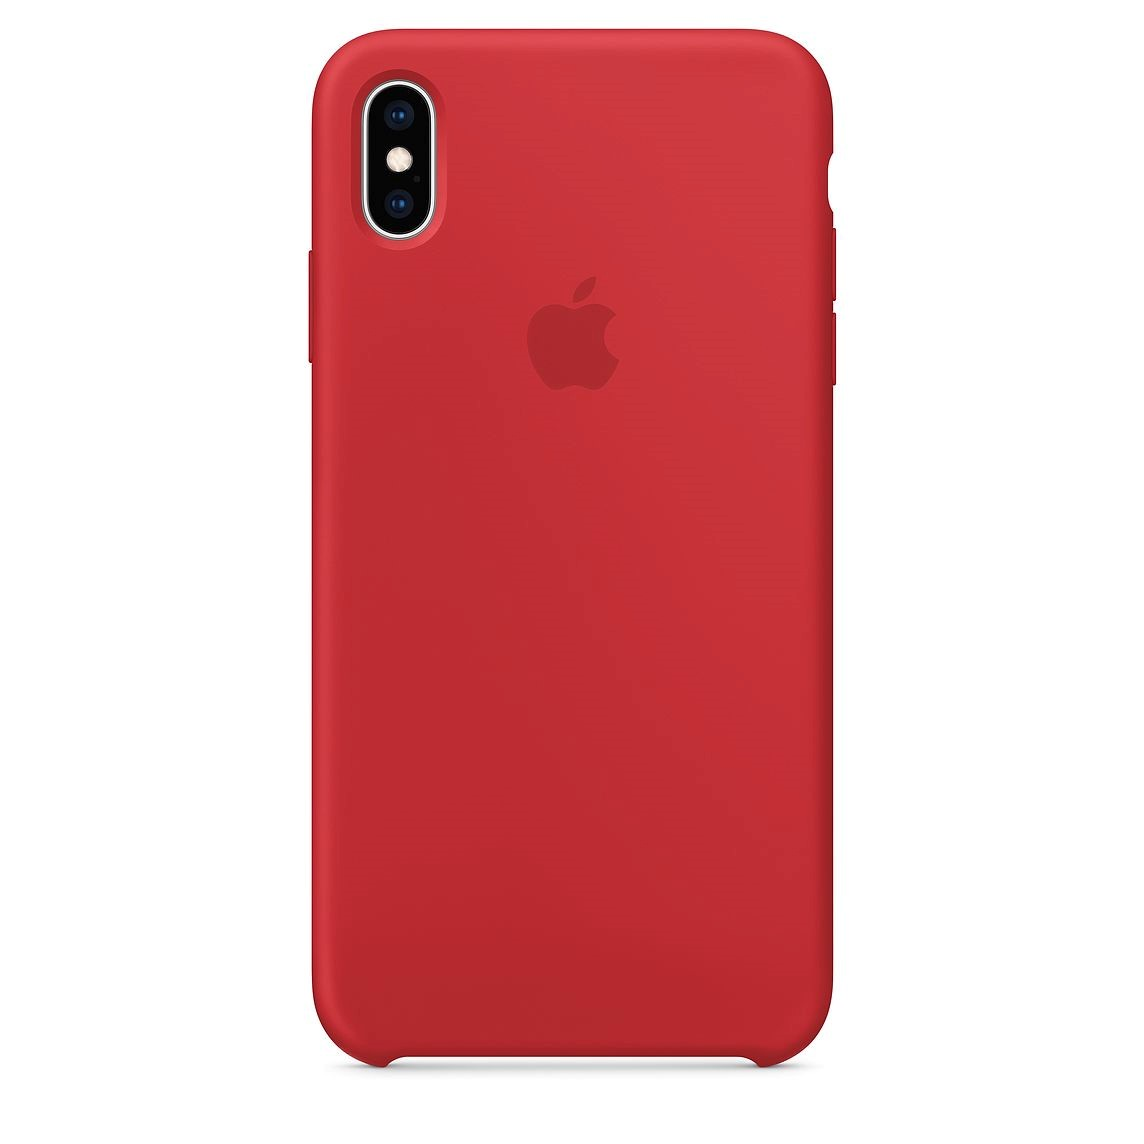 Чехол Apple Silicone Case для iPhone XS Max, Red чехол для apple iphone xs max silicone case nectarine